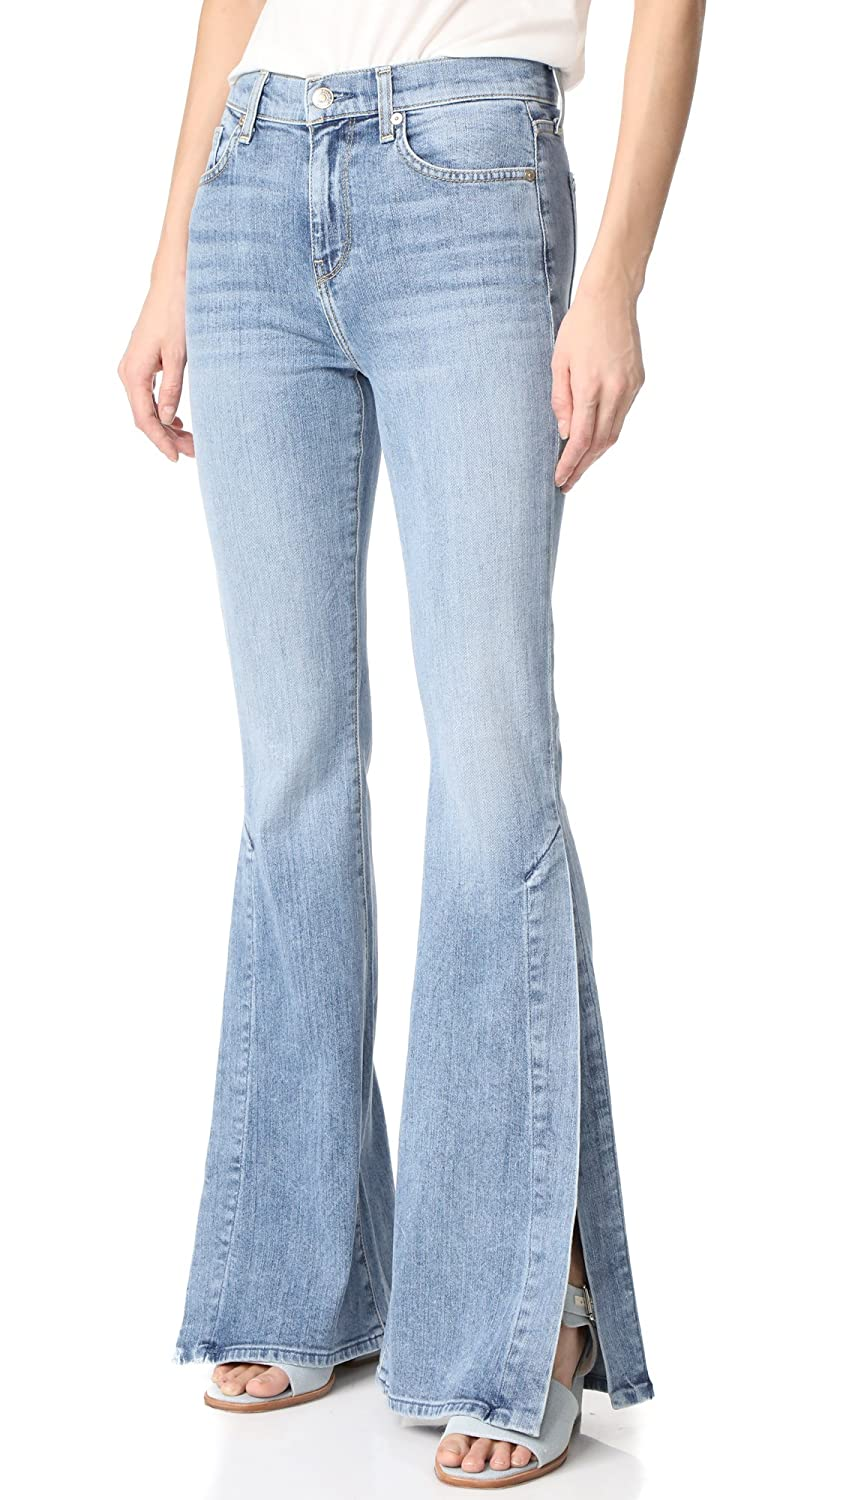 7 For All Mankind Women's Ali Jeans with Split Seams